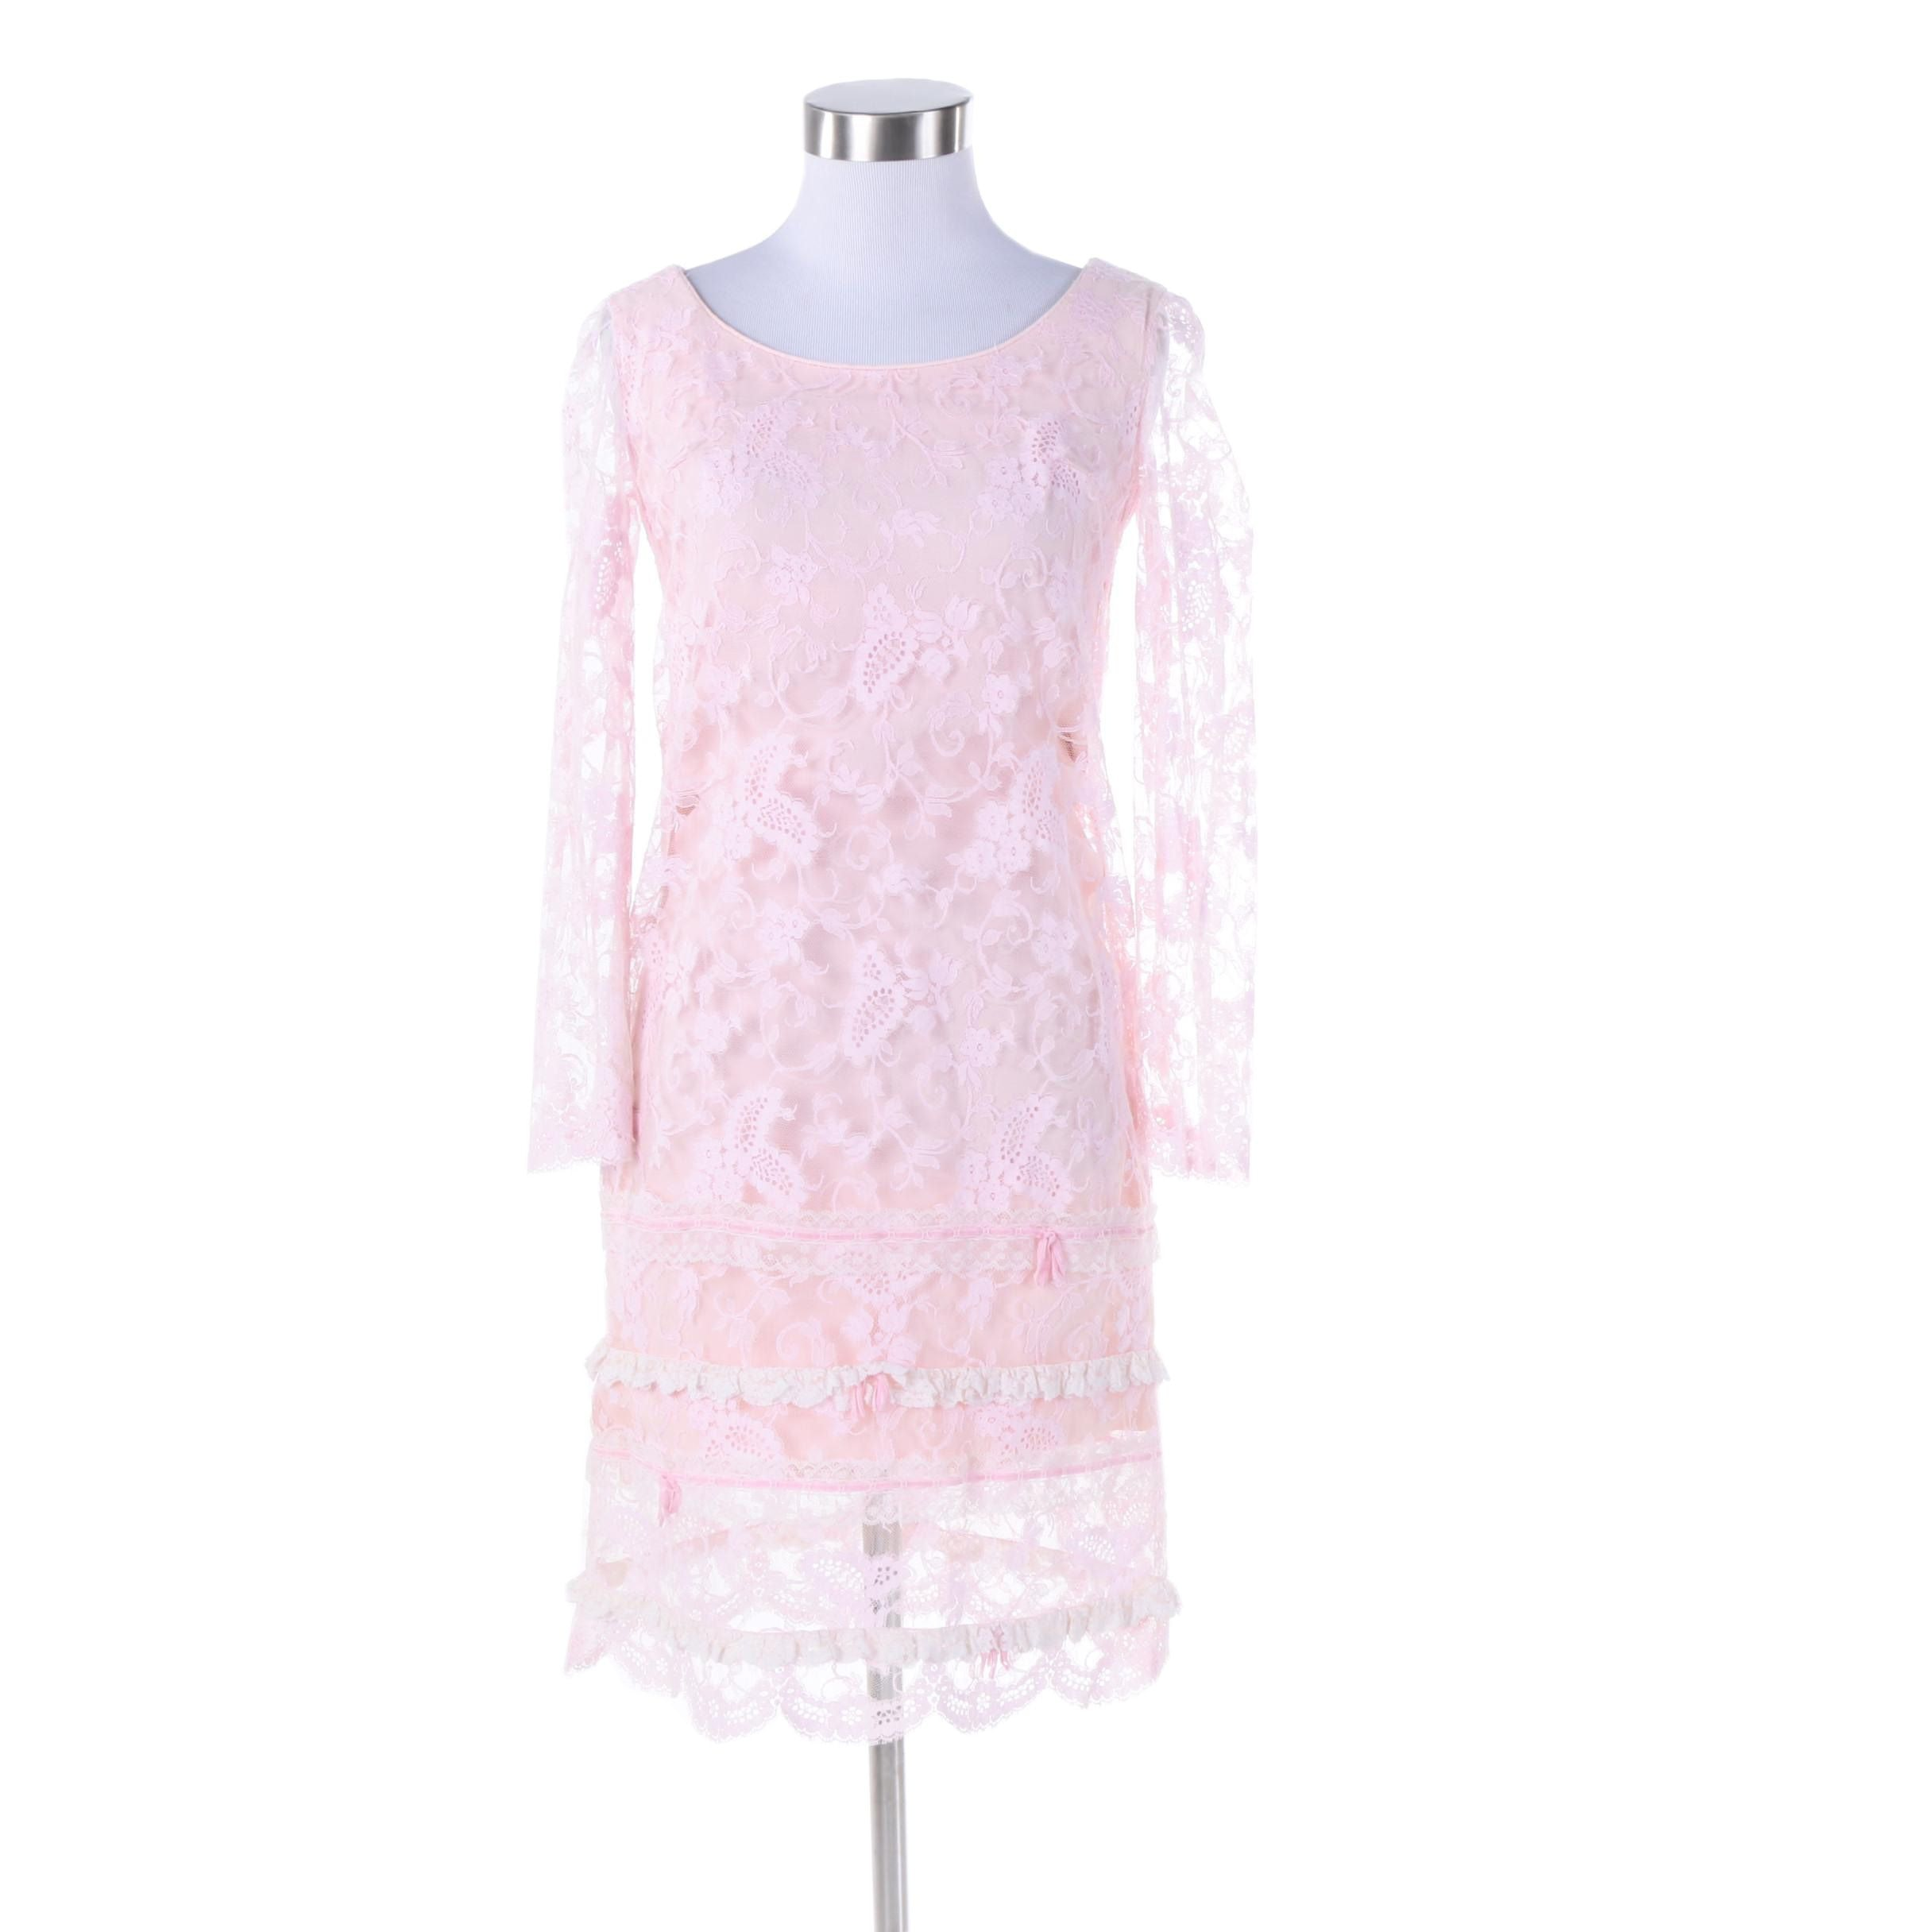 1970s Geoffrey Beene Boutique Pink Lace Mod Dress